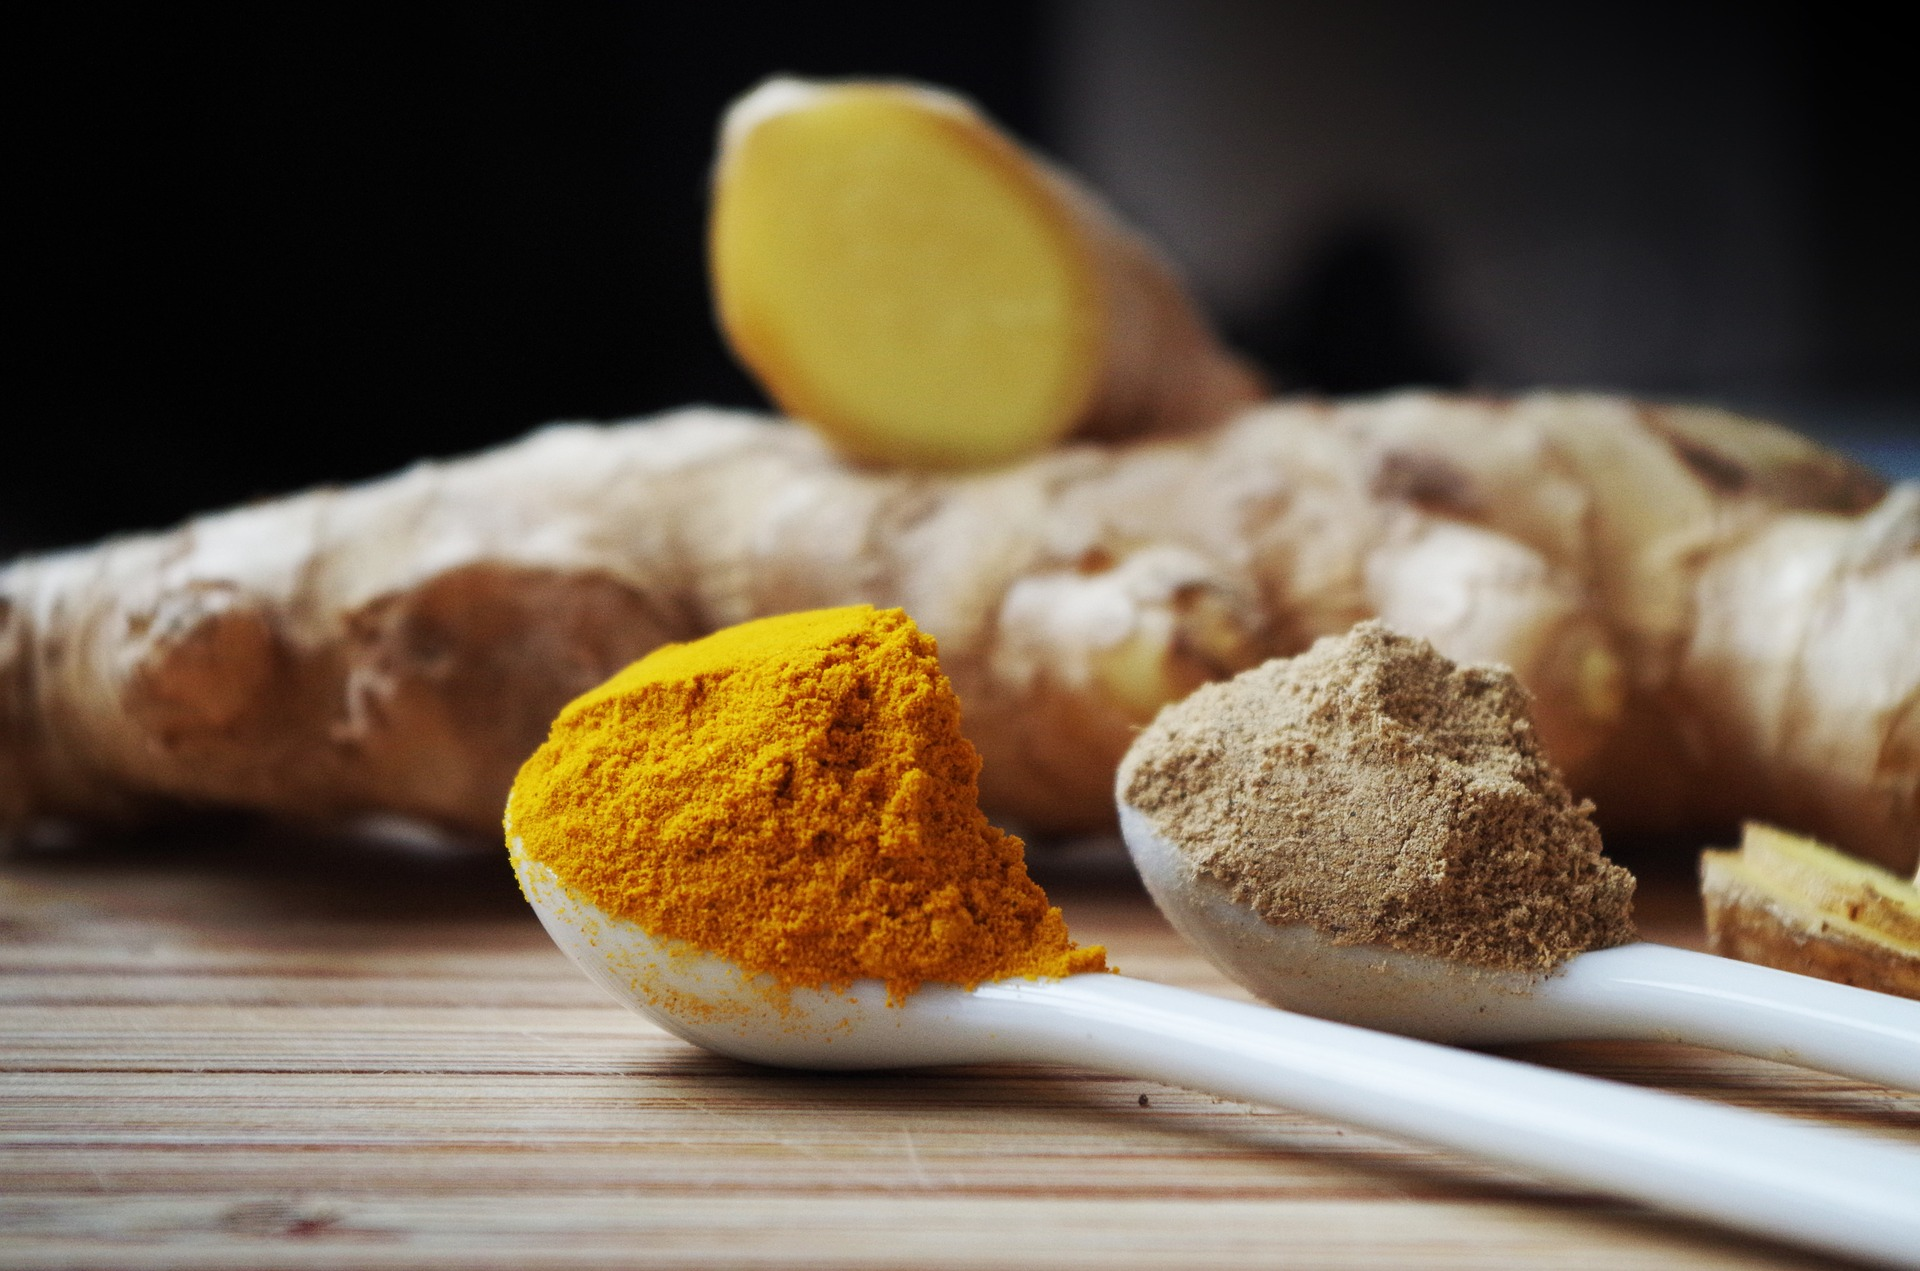 Best Turmeric Supplements of 2021: The ultimate guide